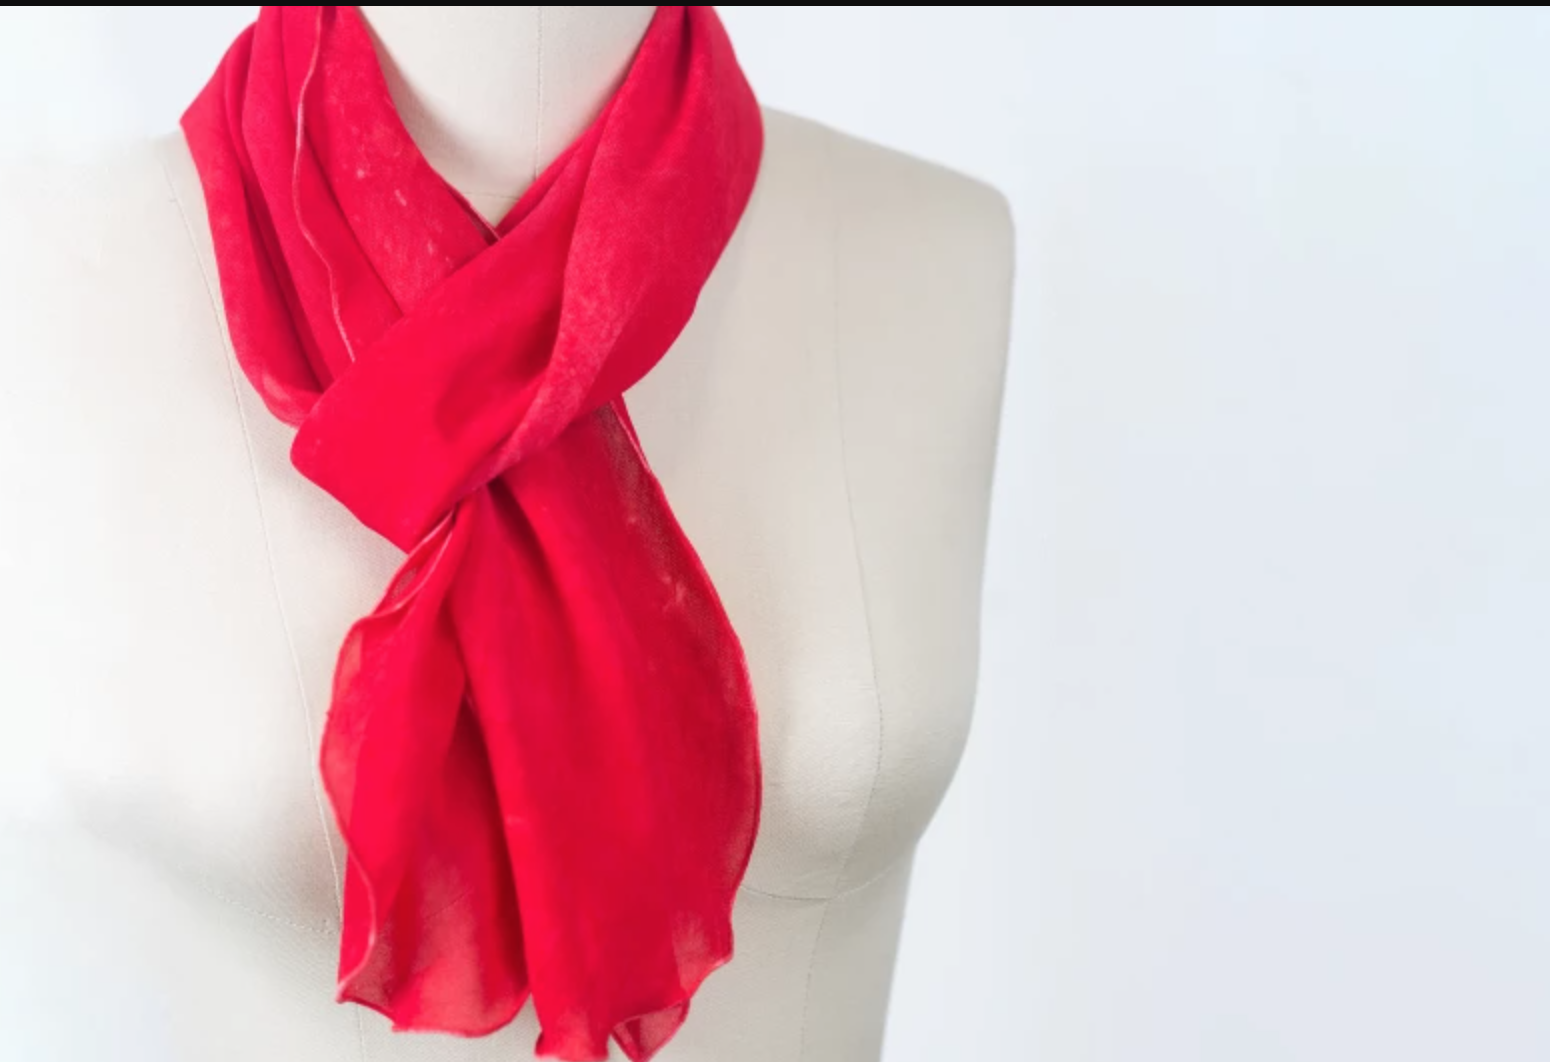 red scarf on mannequin